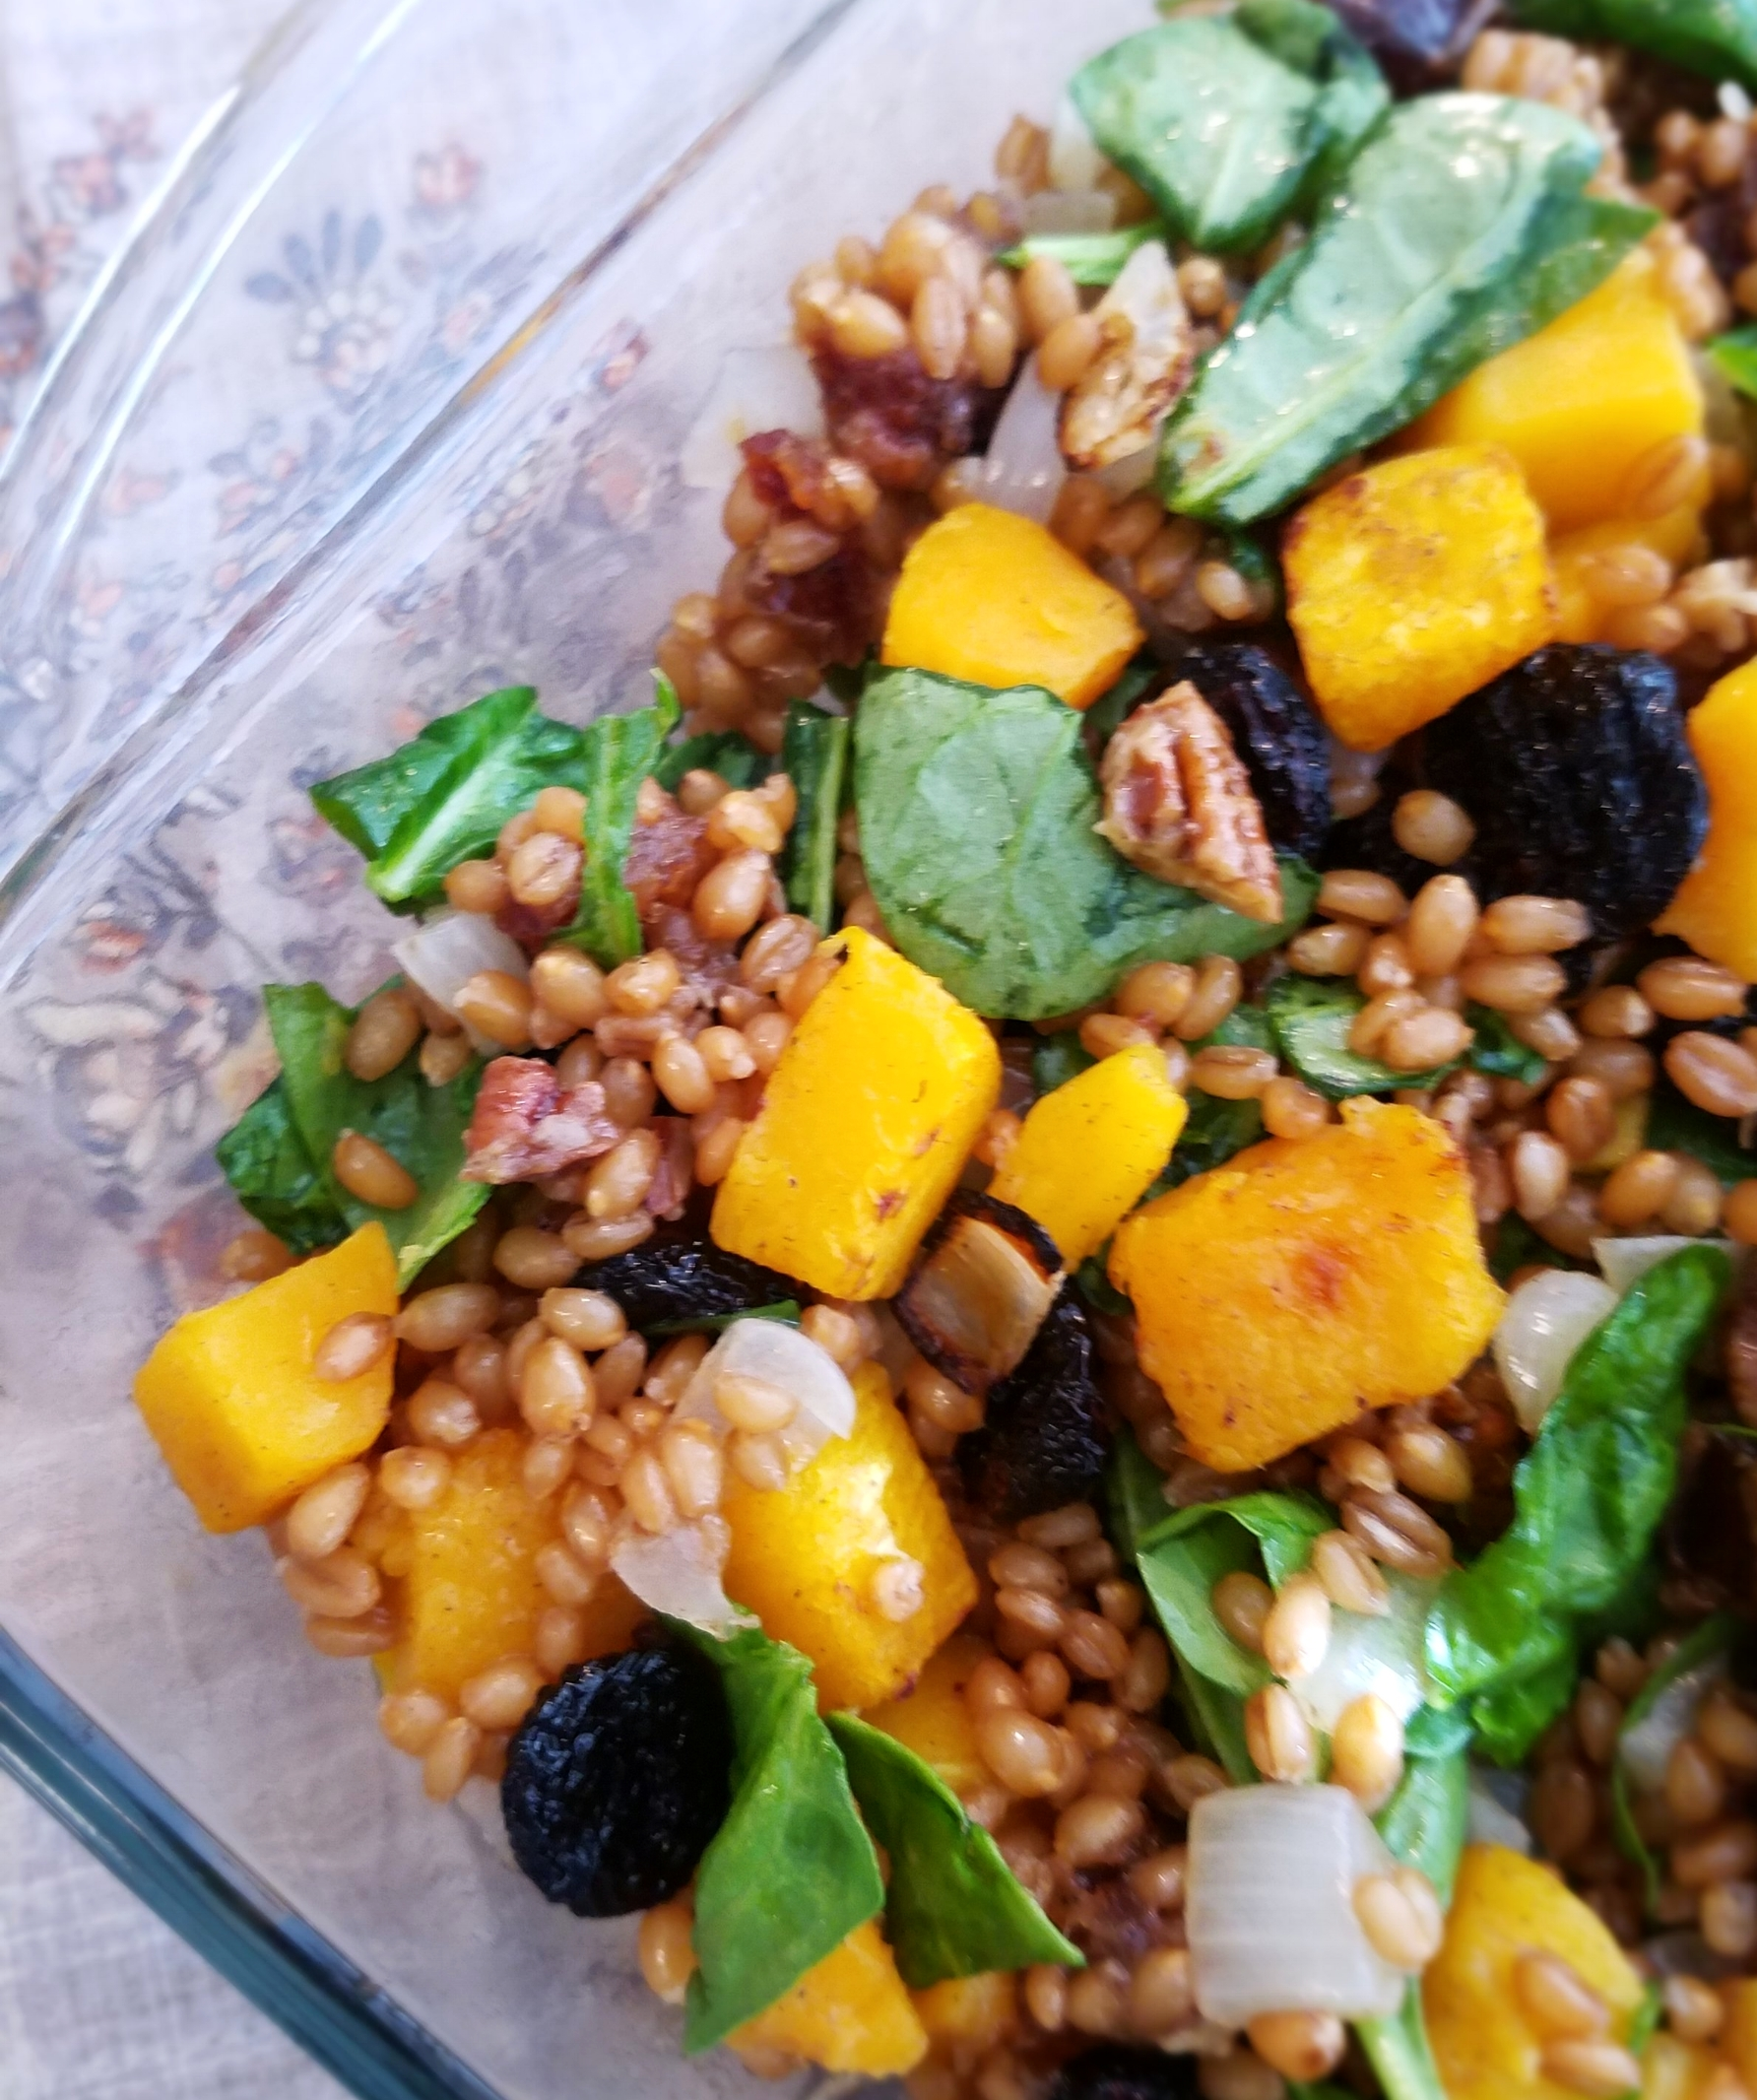 Butternut Squash with Dried Cherries and Wheat Berries.jpg